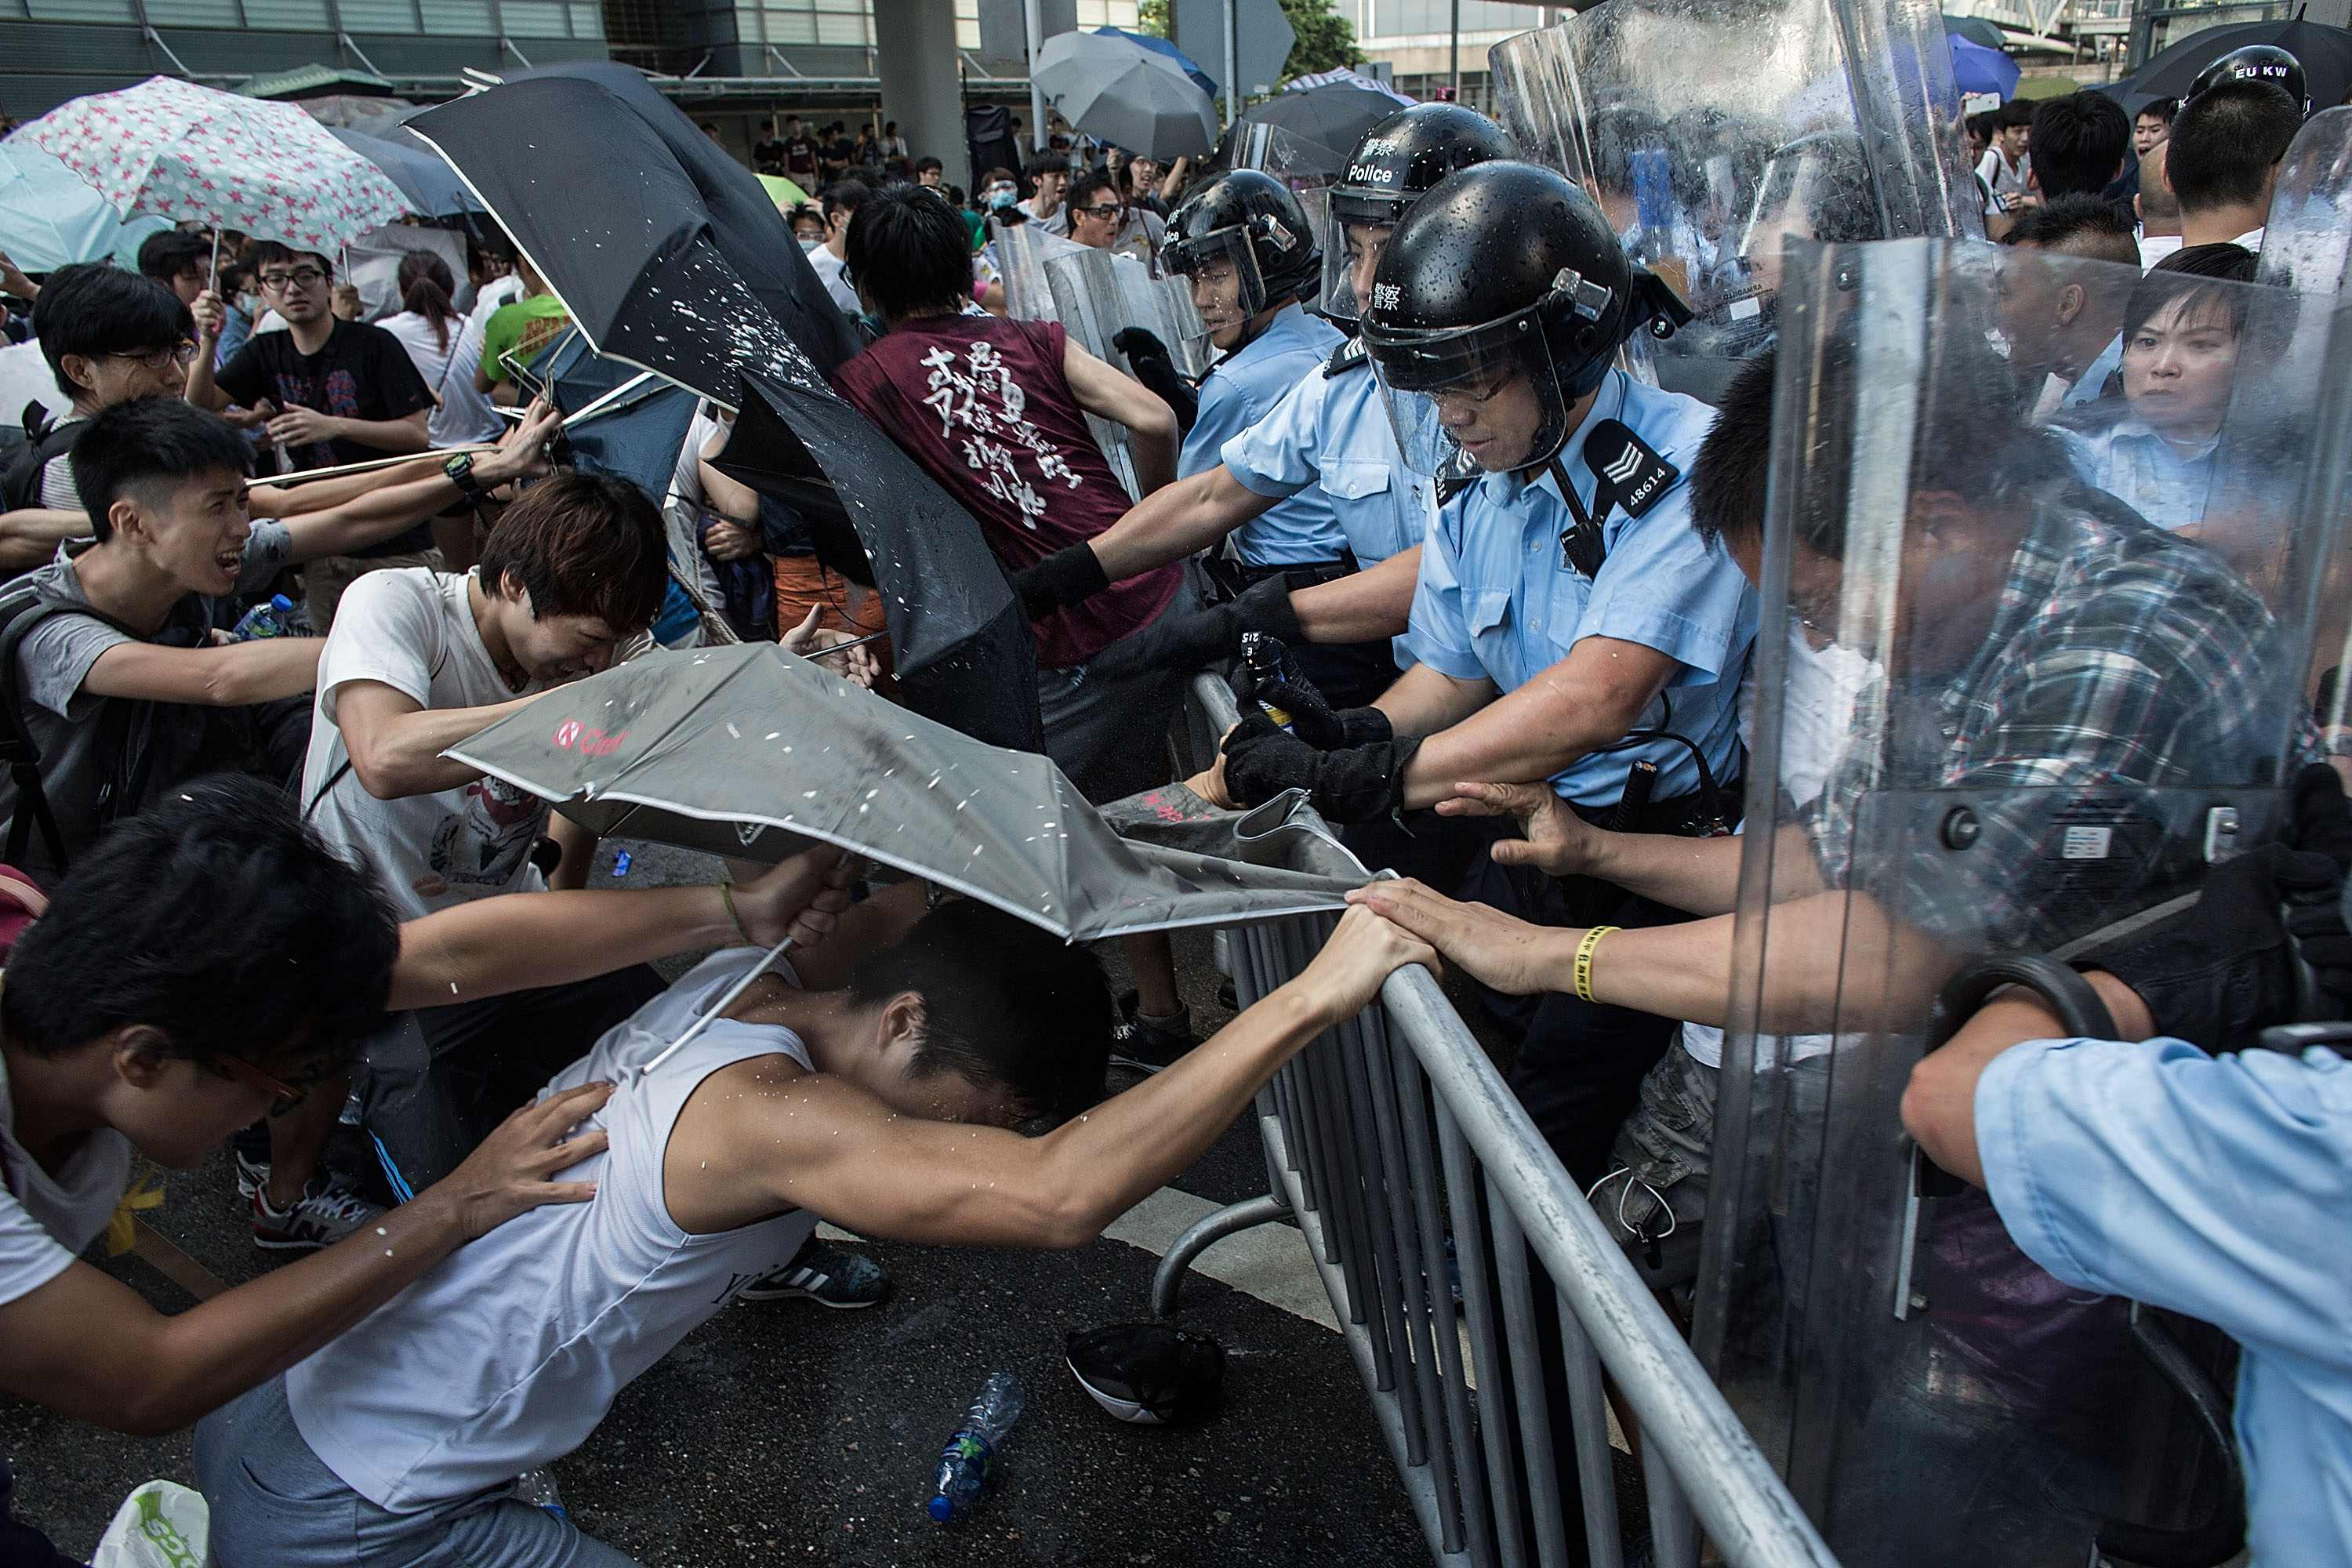 Hong Kong: Police response to student pro-democracy protest an alarming sign | Amnesty International